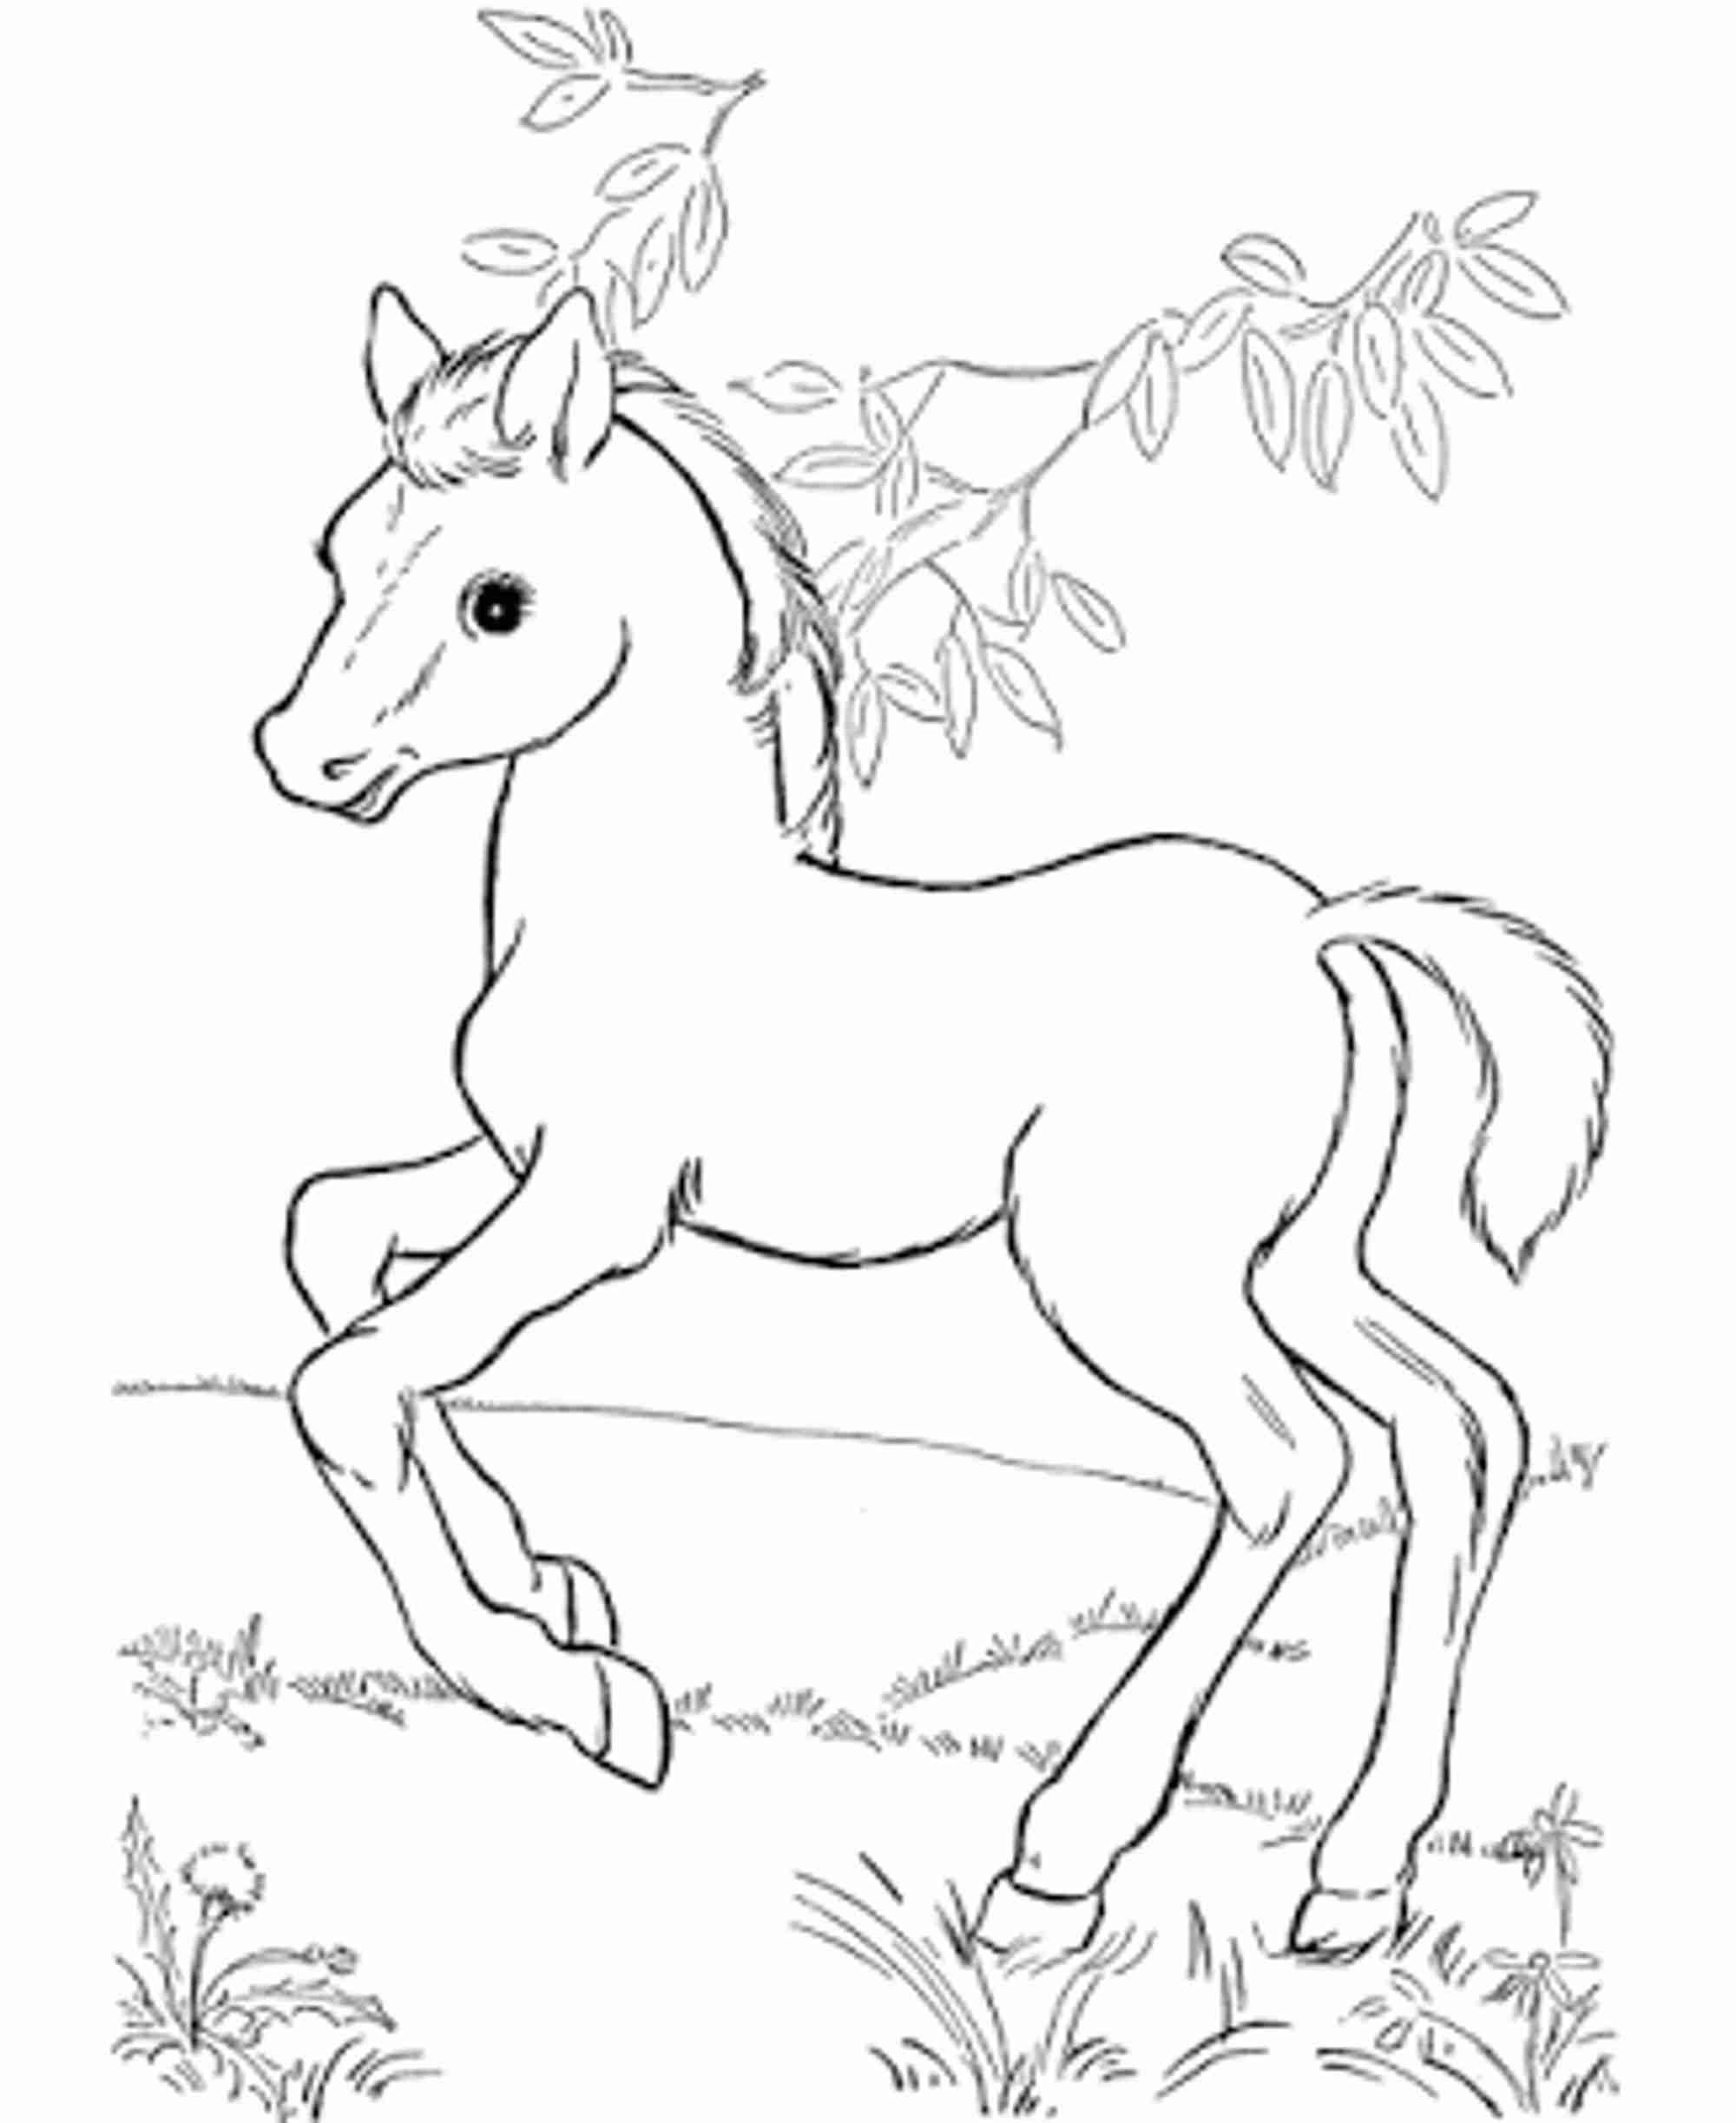 horses to print and color hand drawn horse for adult coloring page art therapy stock color print to and horses